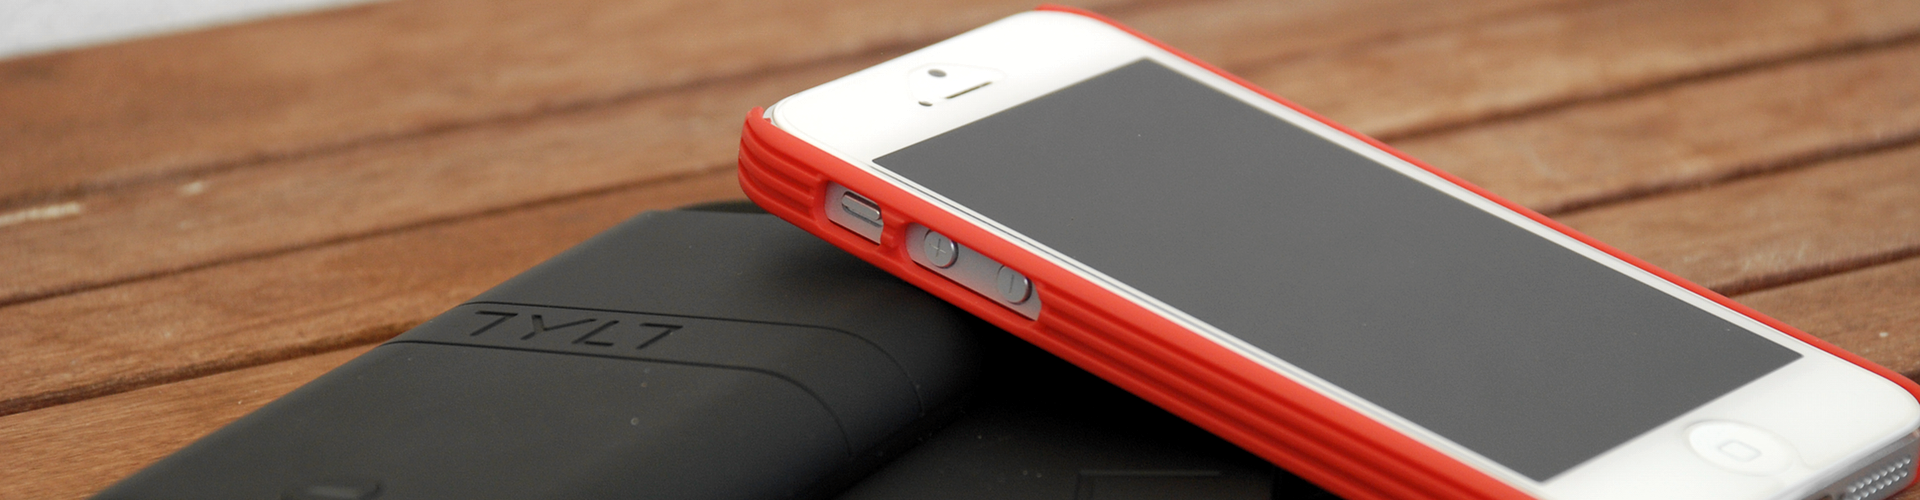 Extend Your Battery With Tylt's Energi Sliding Power Case